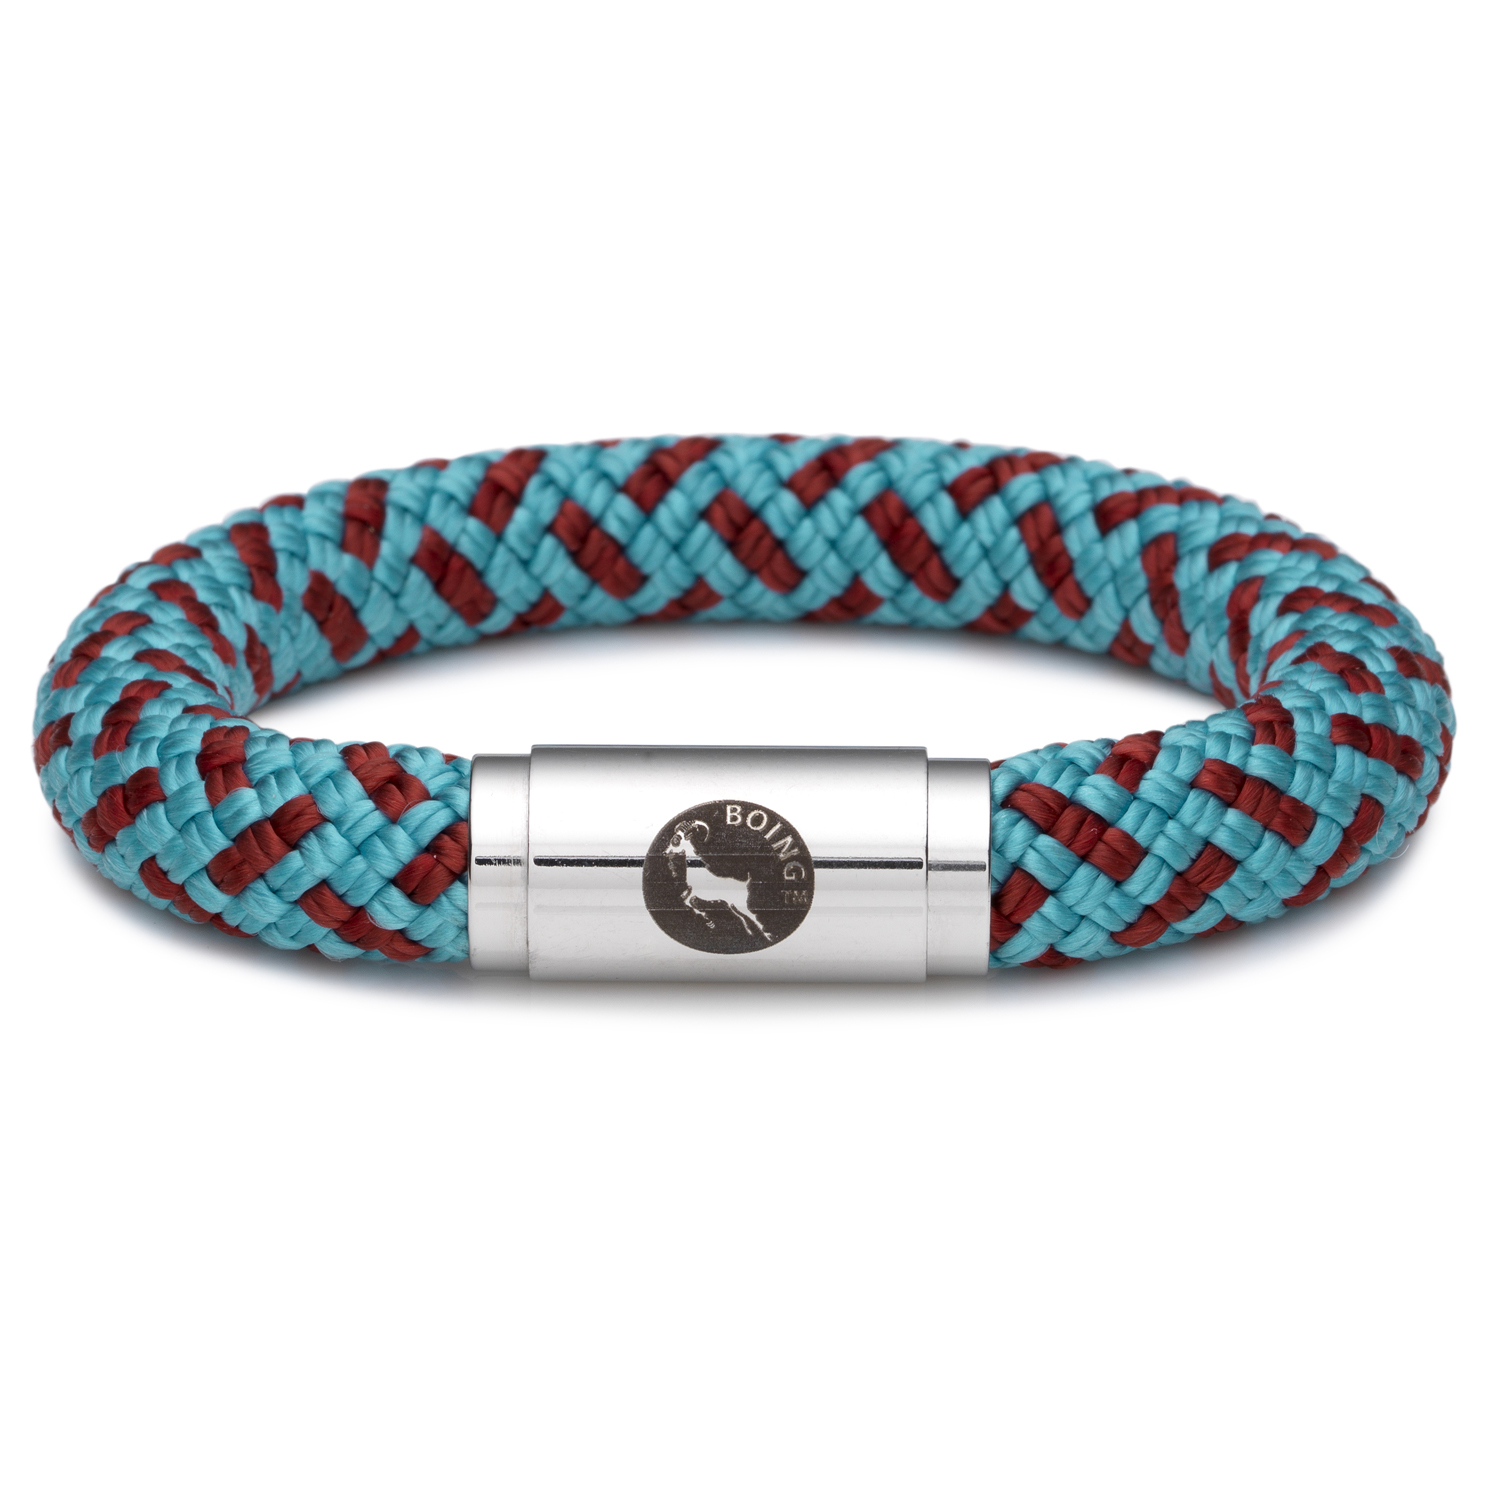 Boing – Chunky Large Wristband in Inca Blue